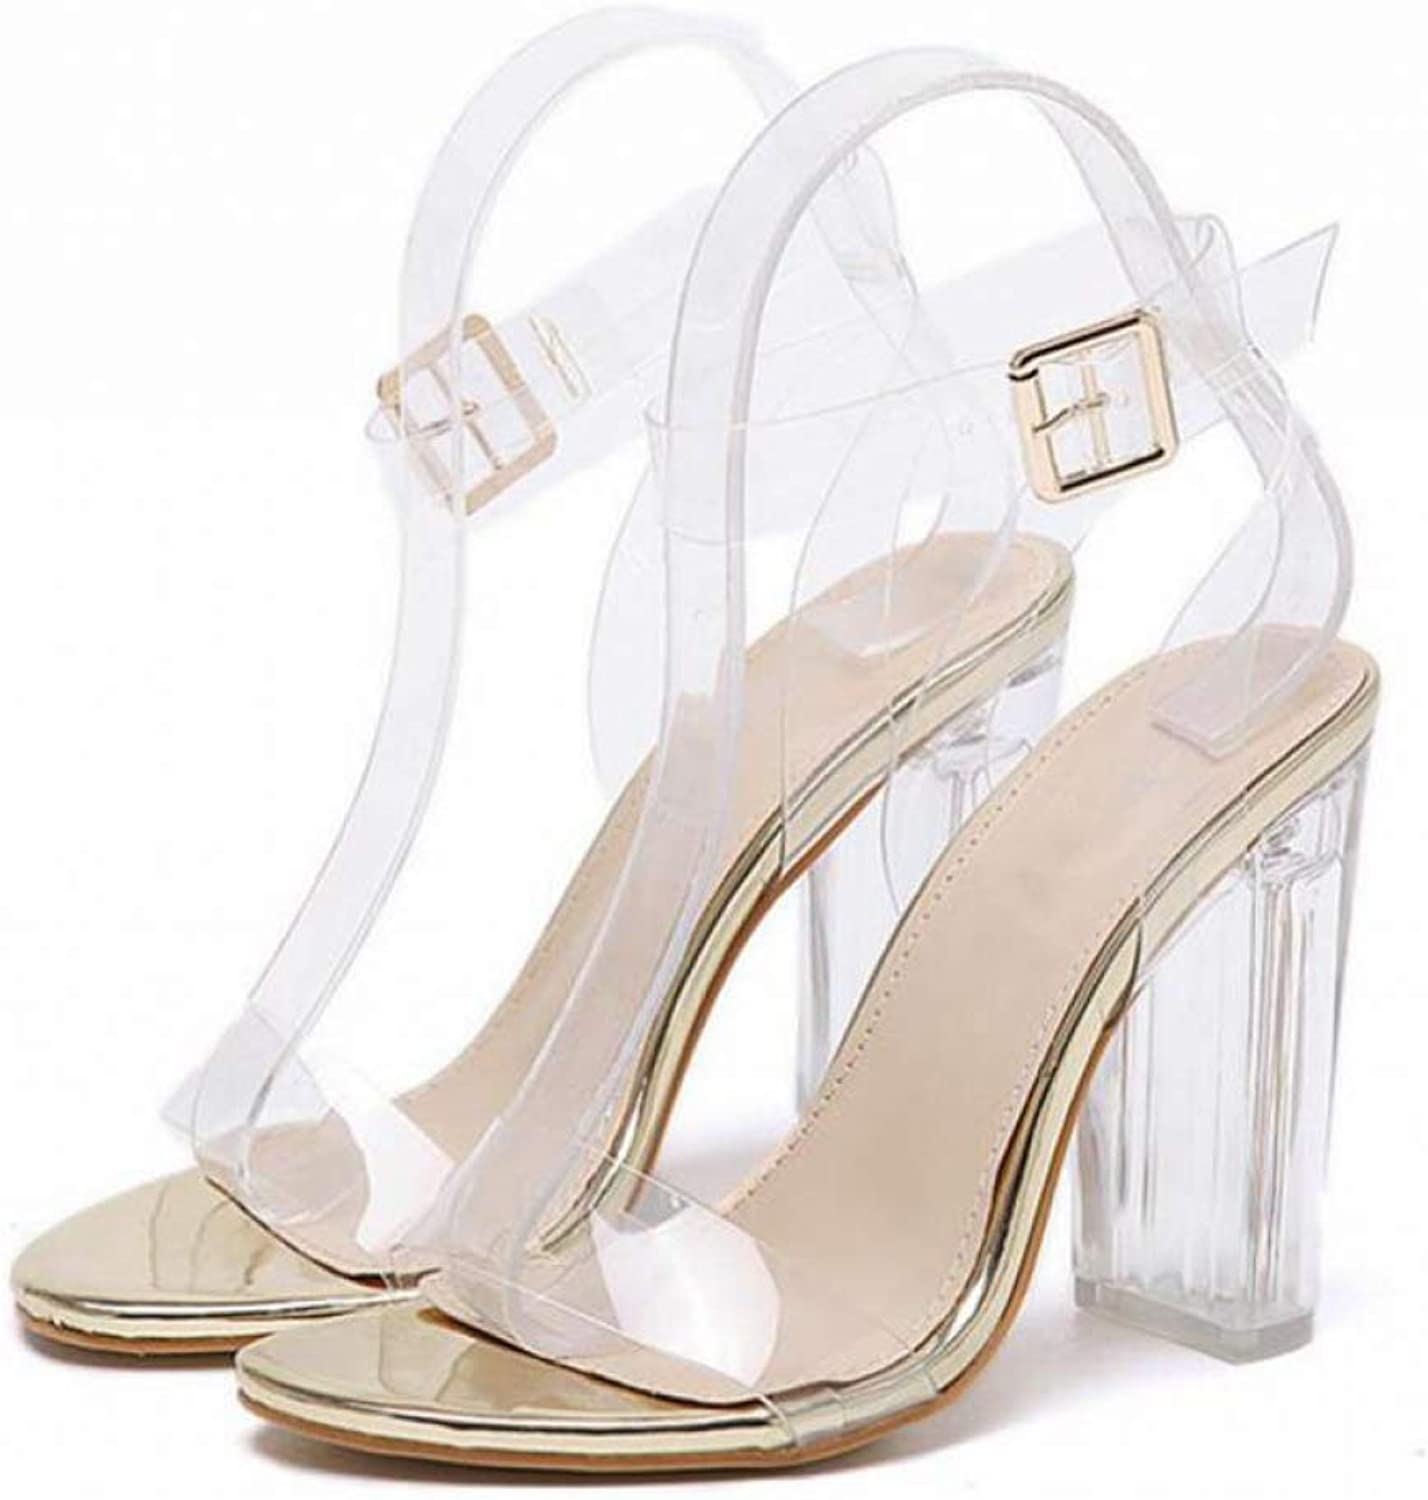 T-JULY Women's Sandal Waterproof Platform Crystal Transparent Open Toed High Heels Ladies Sexy shoes for Summer